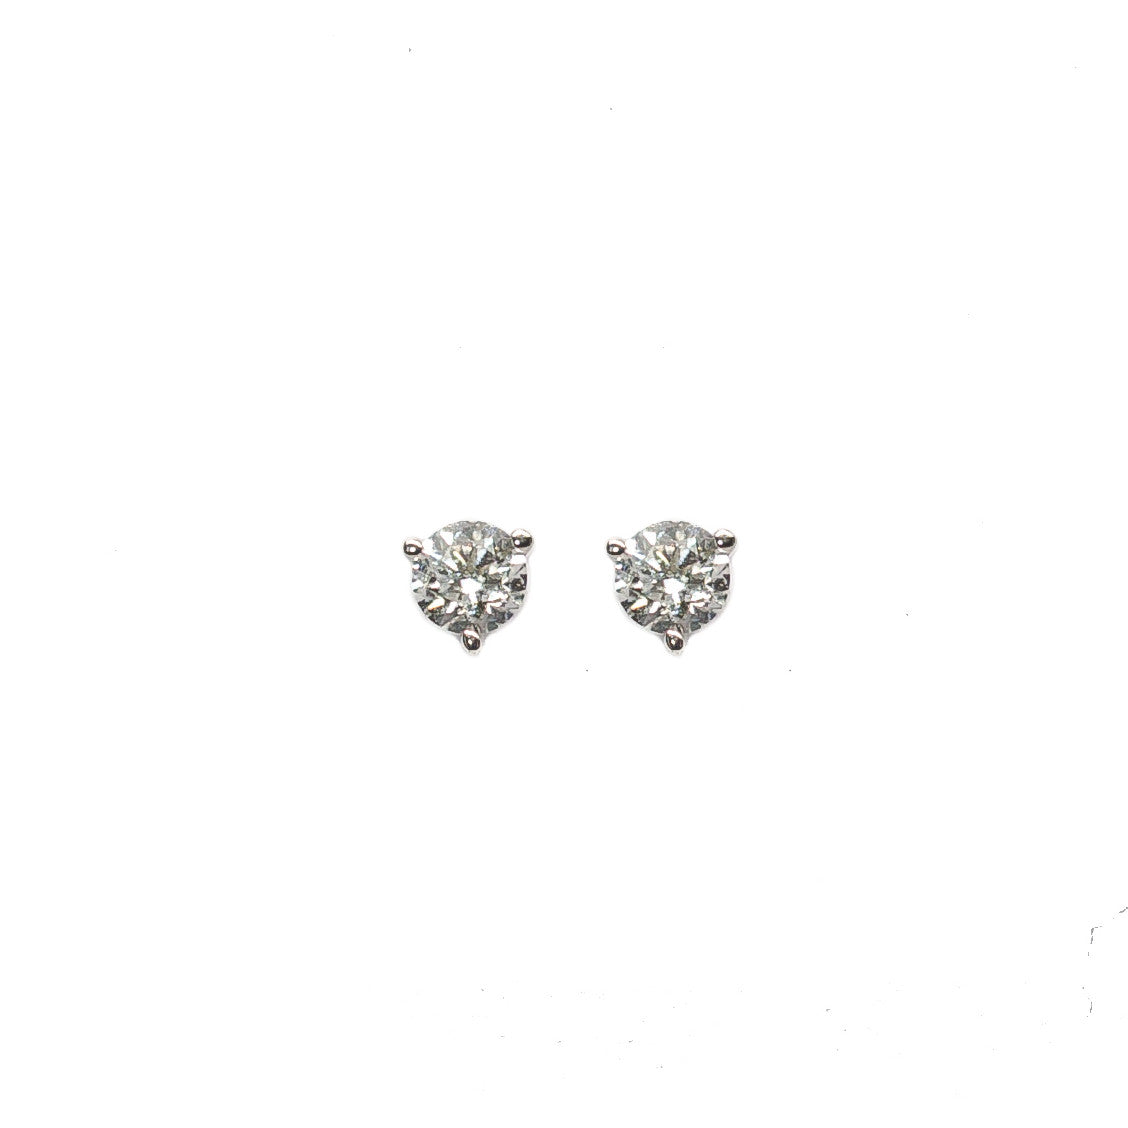 certified stud white round prong i vs color h ea igi earrings diamond clarity gold